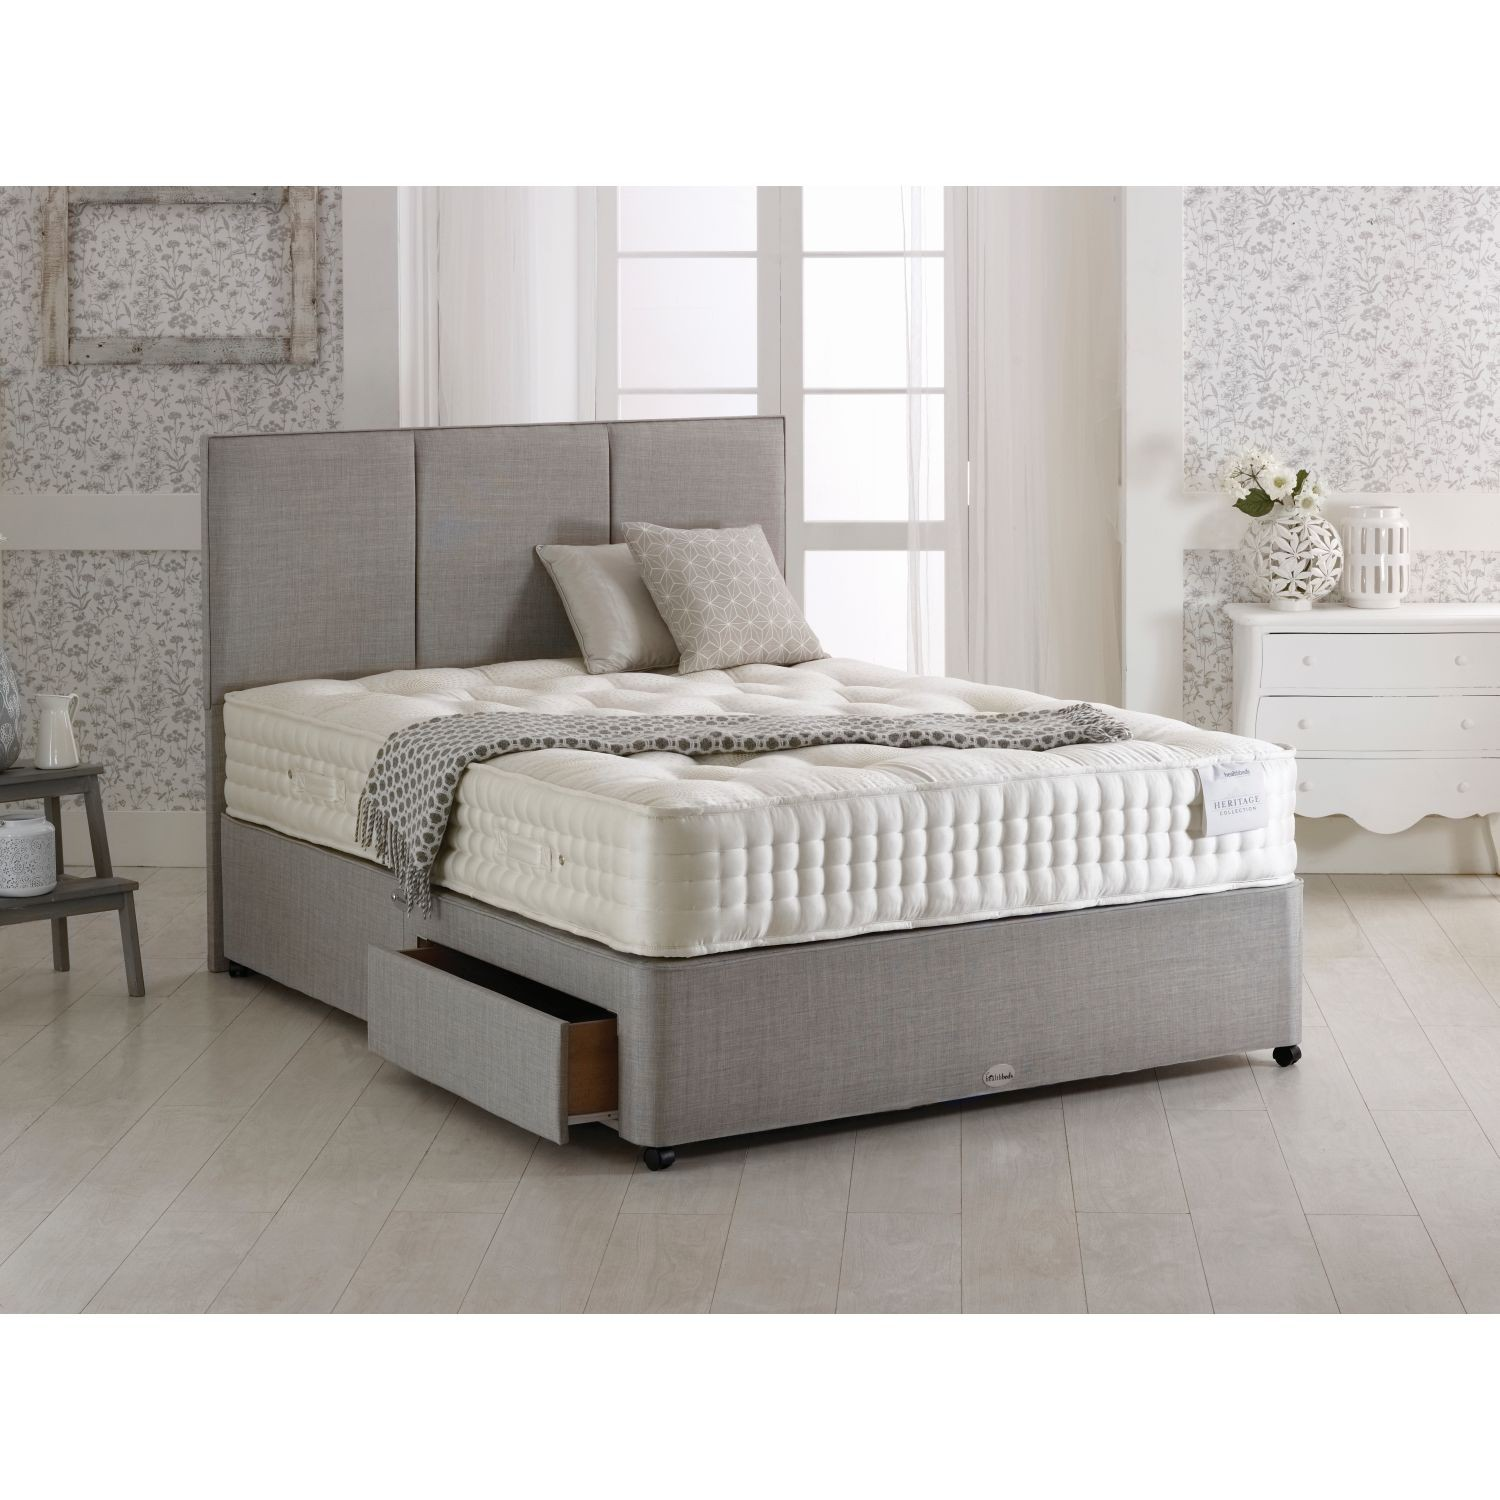 Healthbeds diamond two drawer divan set double for 2 drawer double divan bed